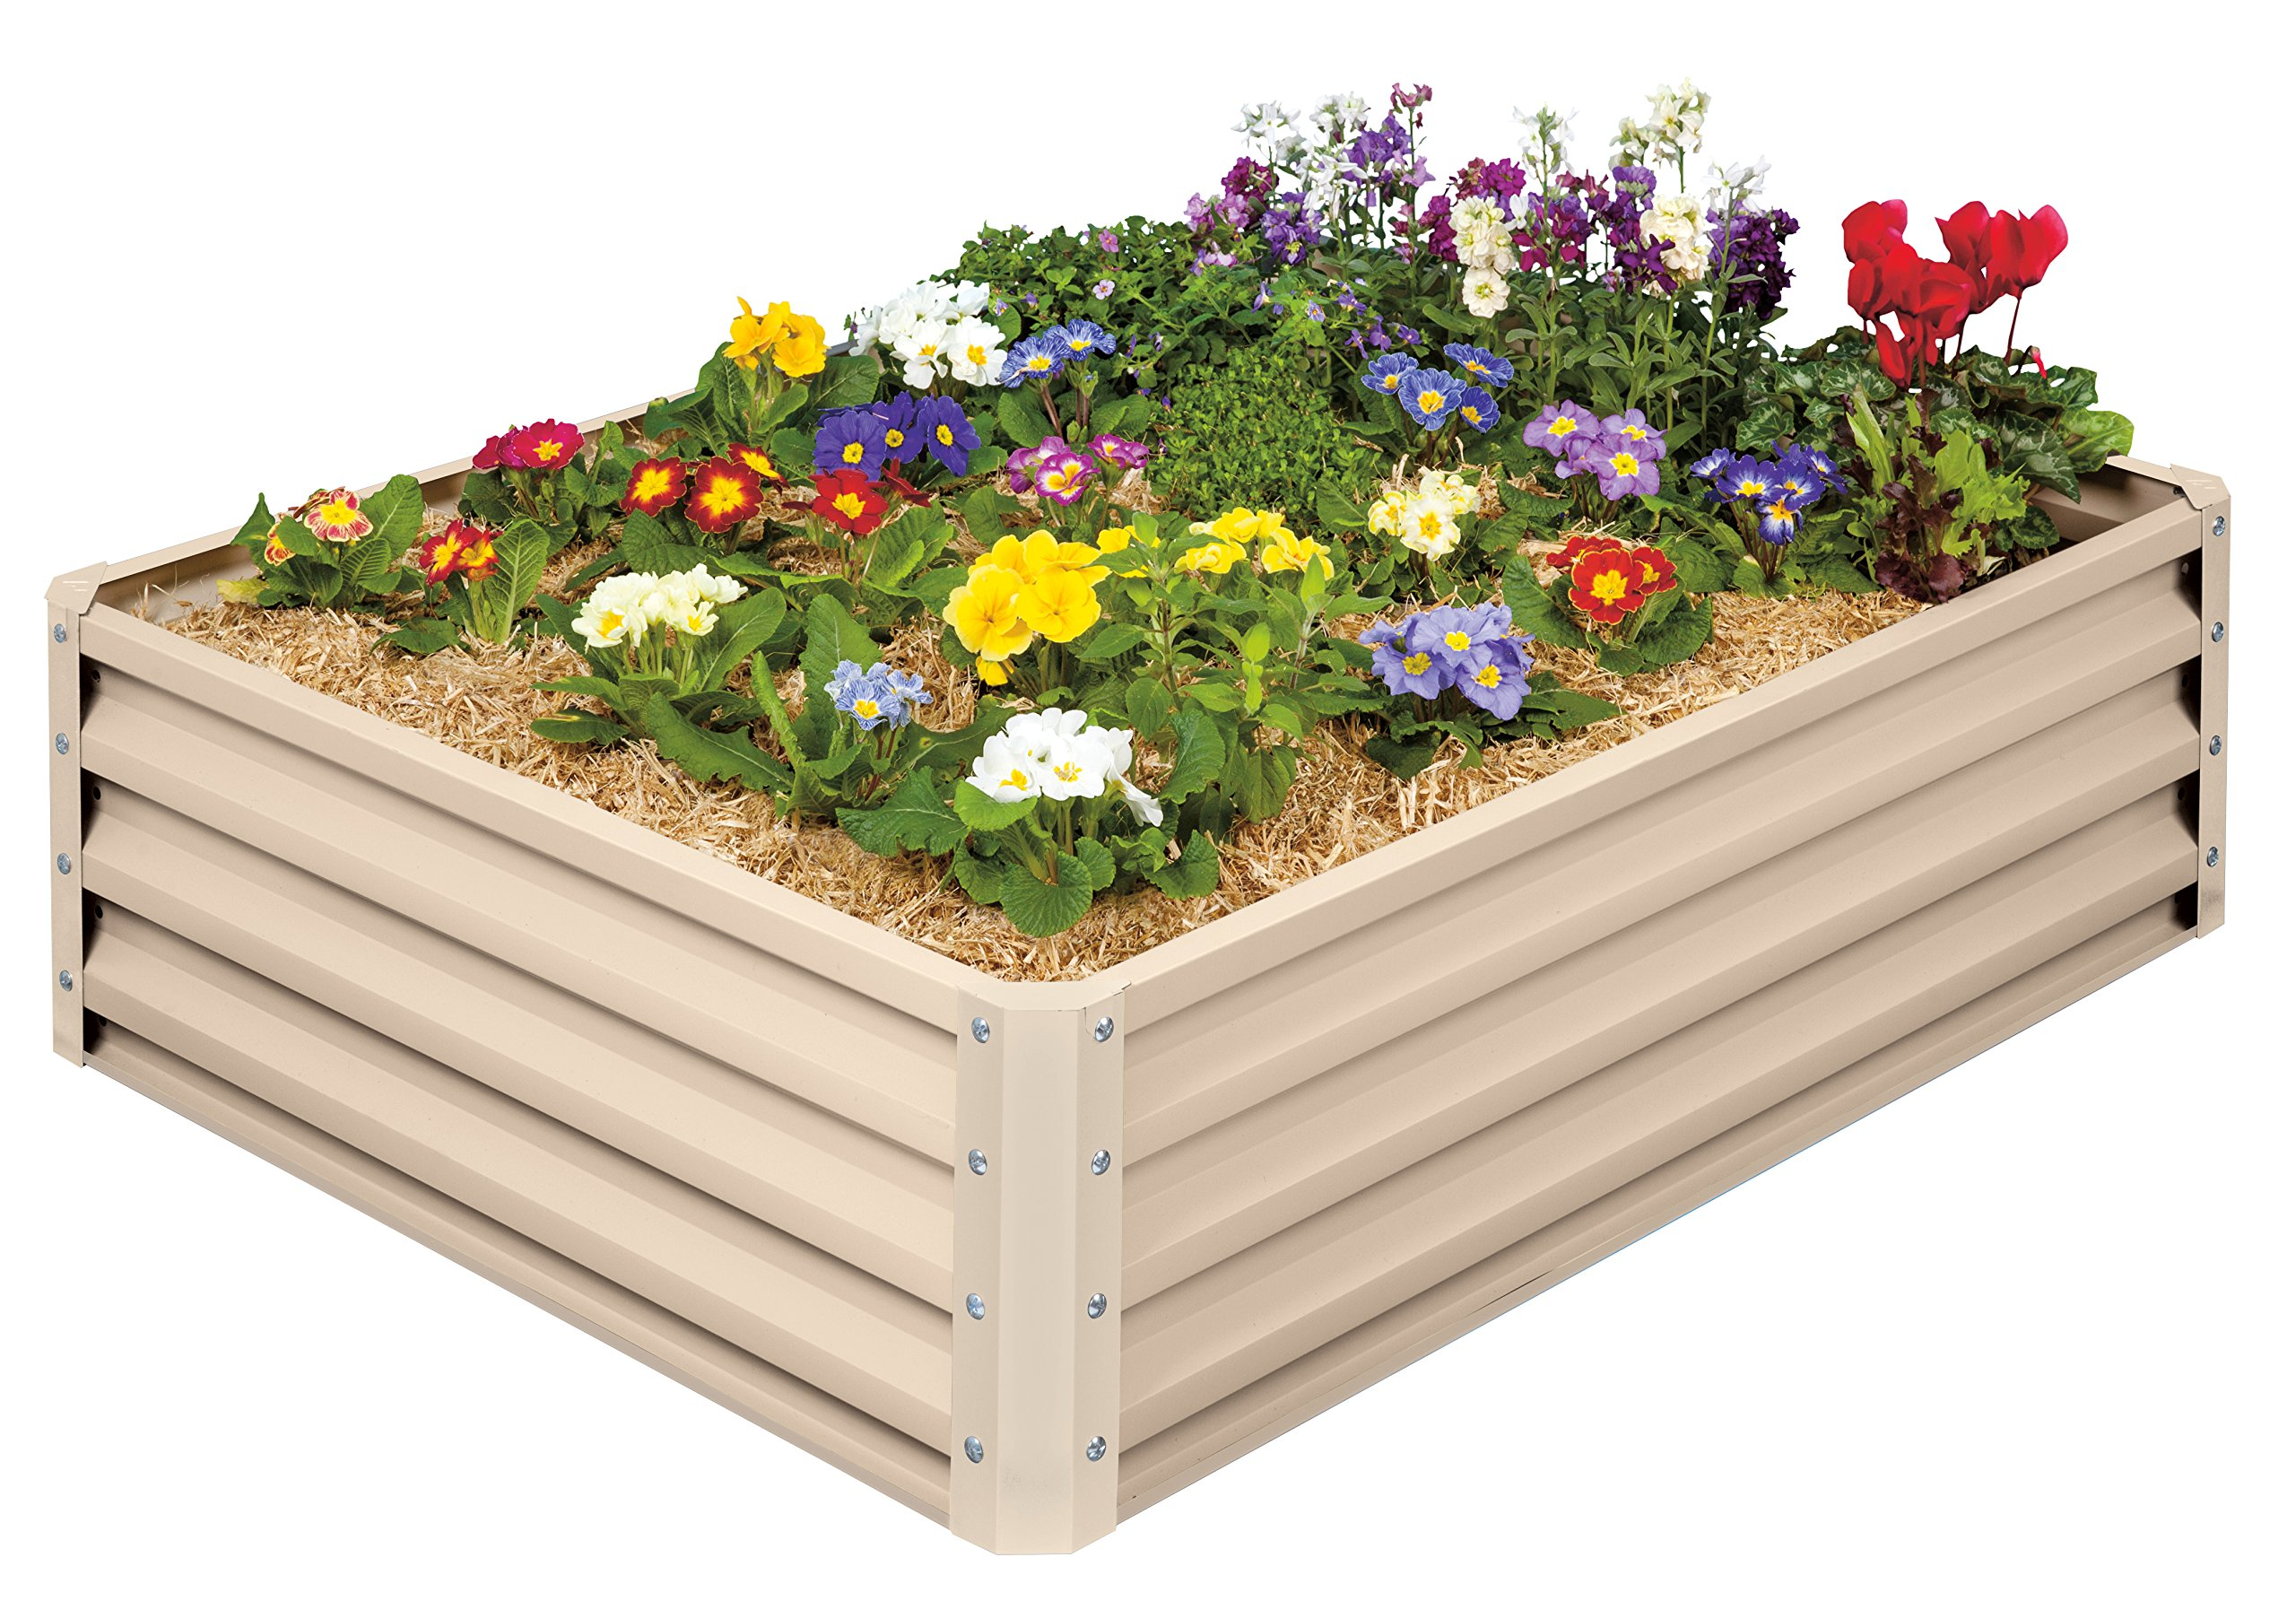 Metal Raised Garden Bed Kit - Elevated Planter Box For Growing Herbs, Vegetables, Flowers, and Succulents (1) 1 Beige Metal Raised Garden Bed Kit